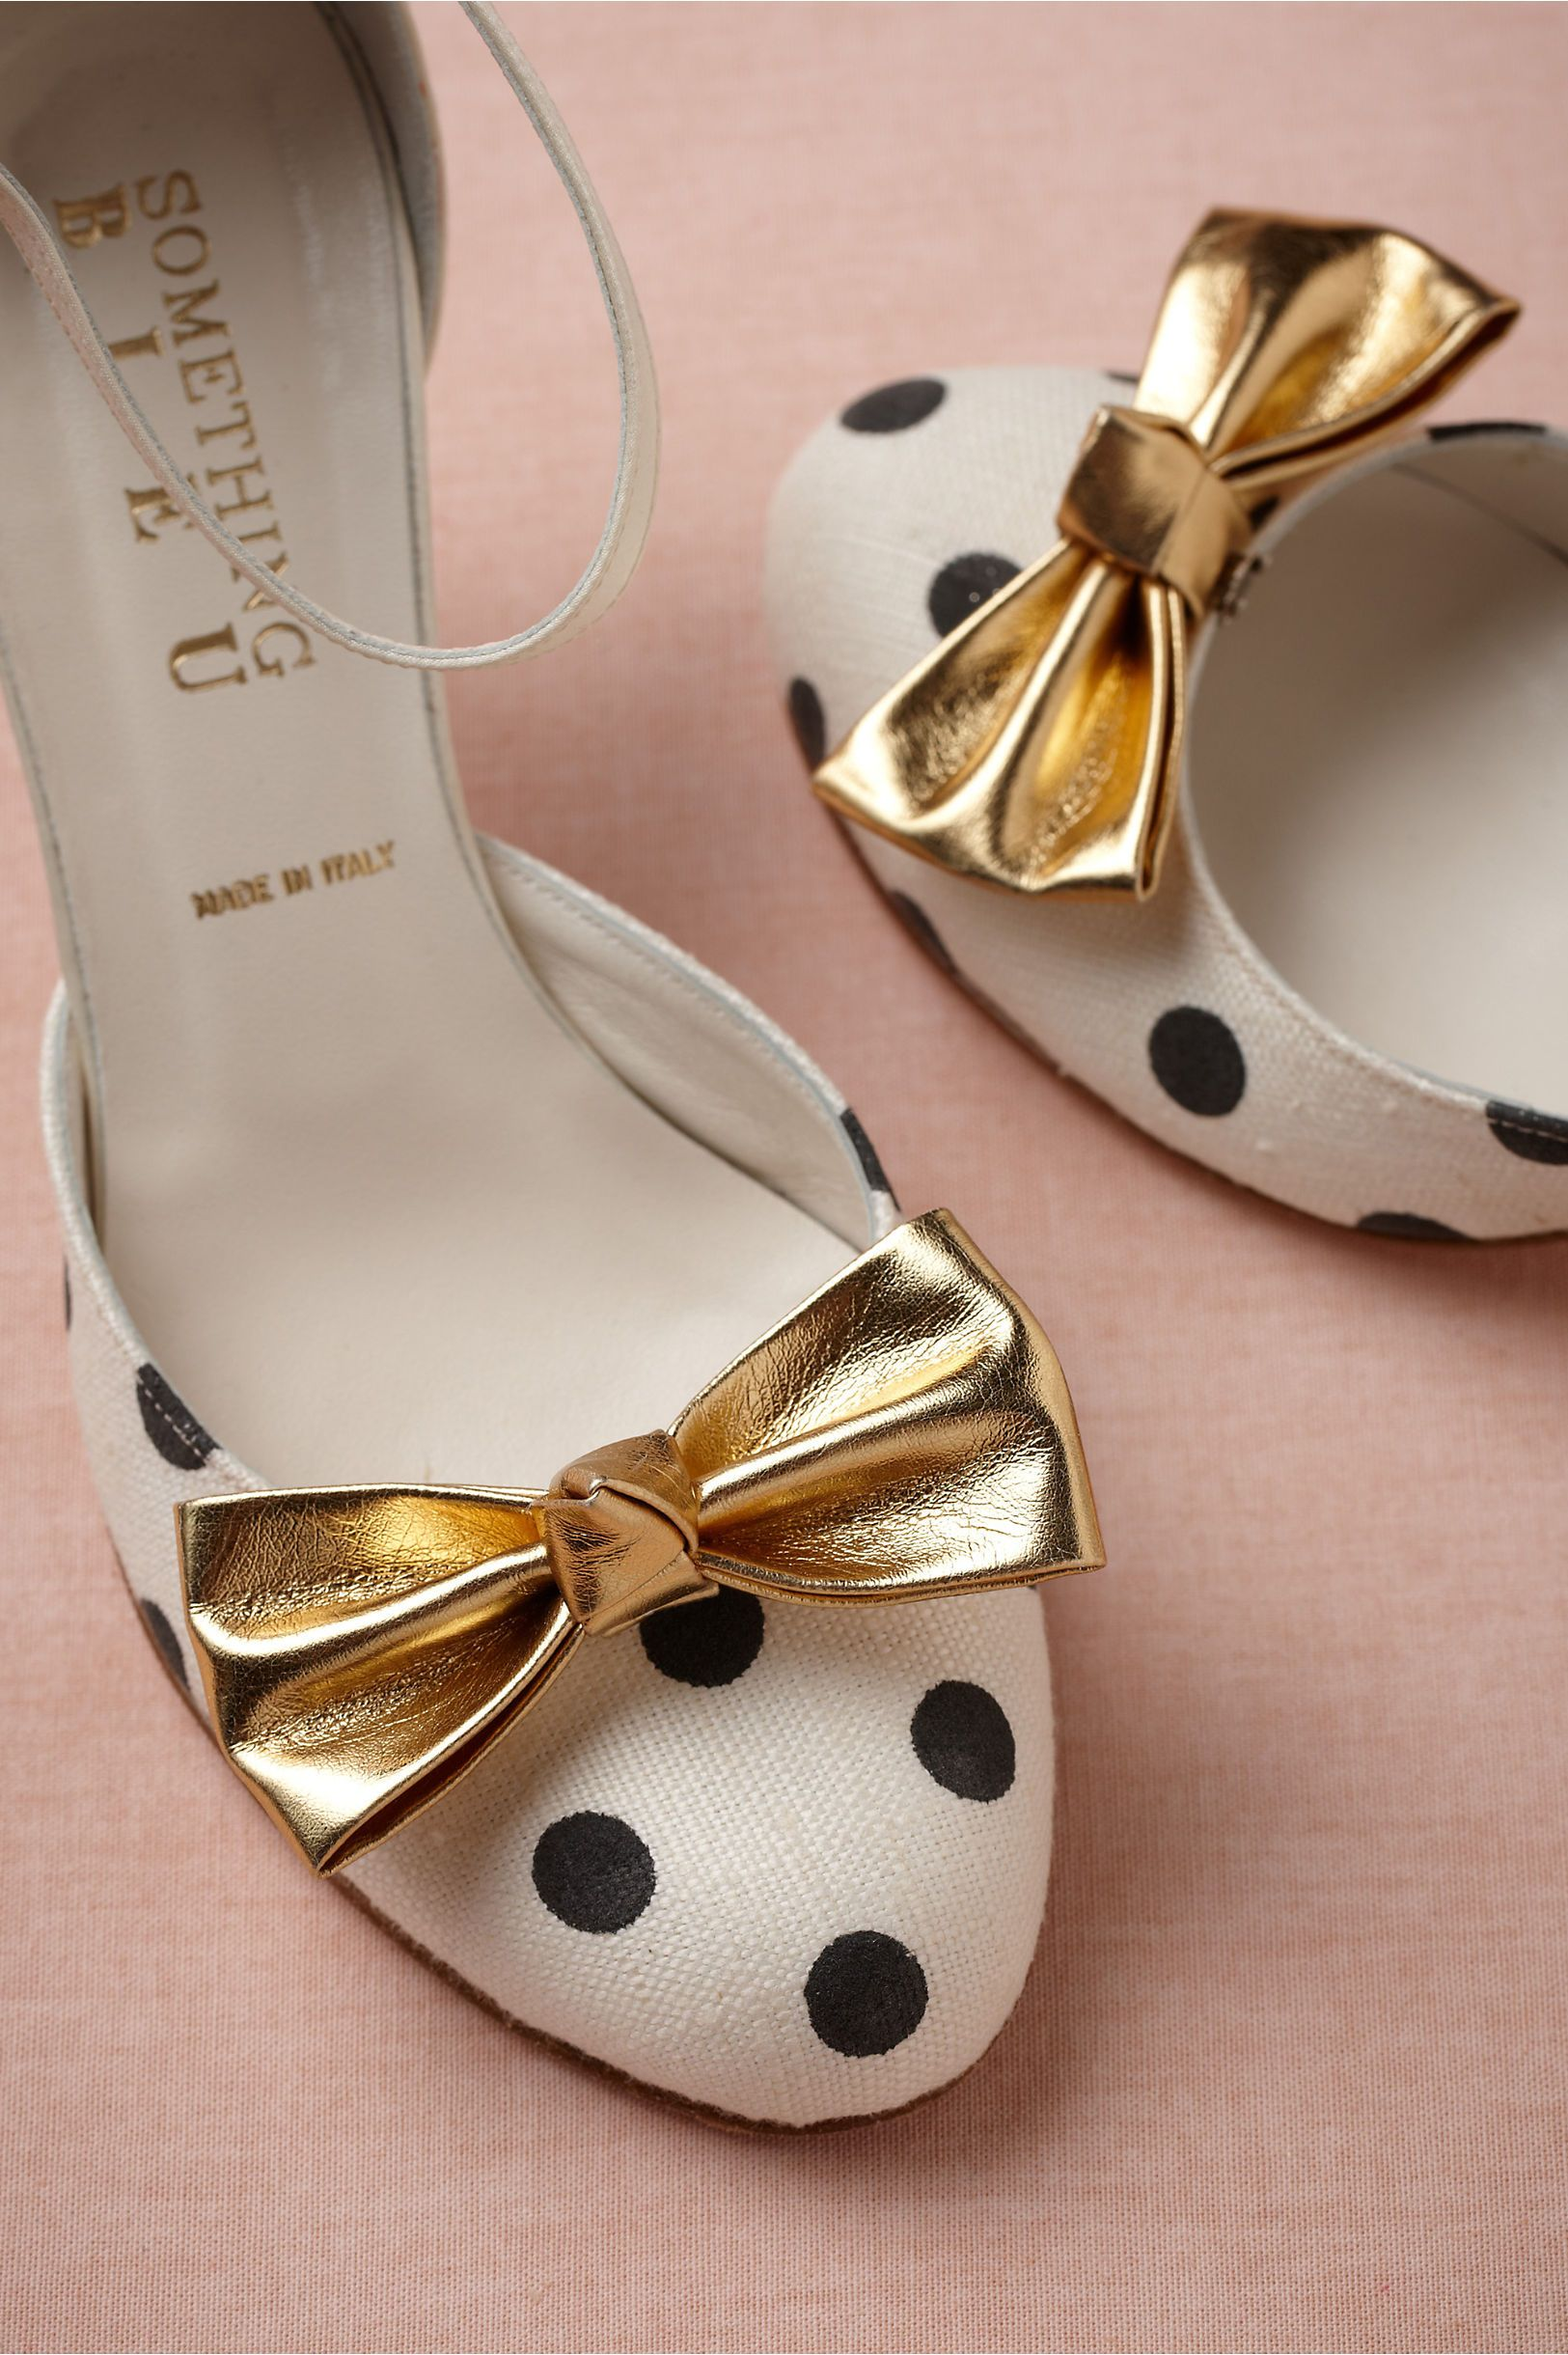 Wouldn't these be just PERFECT with your all-white wedding dress... just the right amount of whimsy!